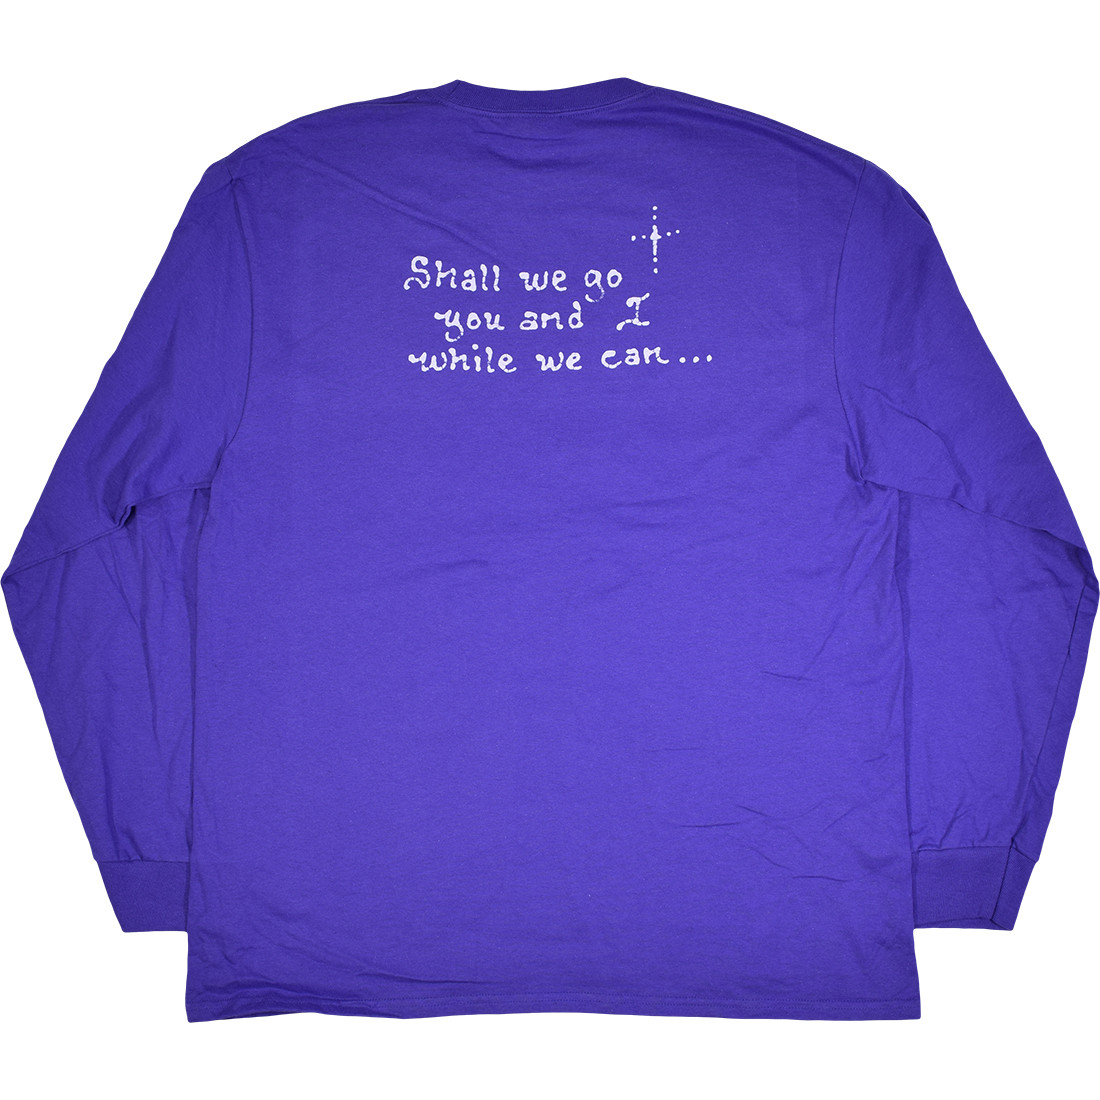 Jerry Moon Purple Long Sleeve T-Shirt